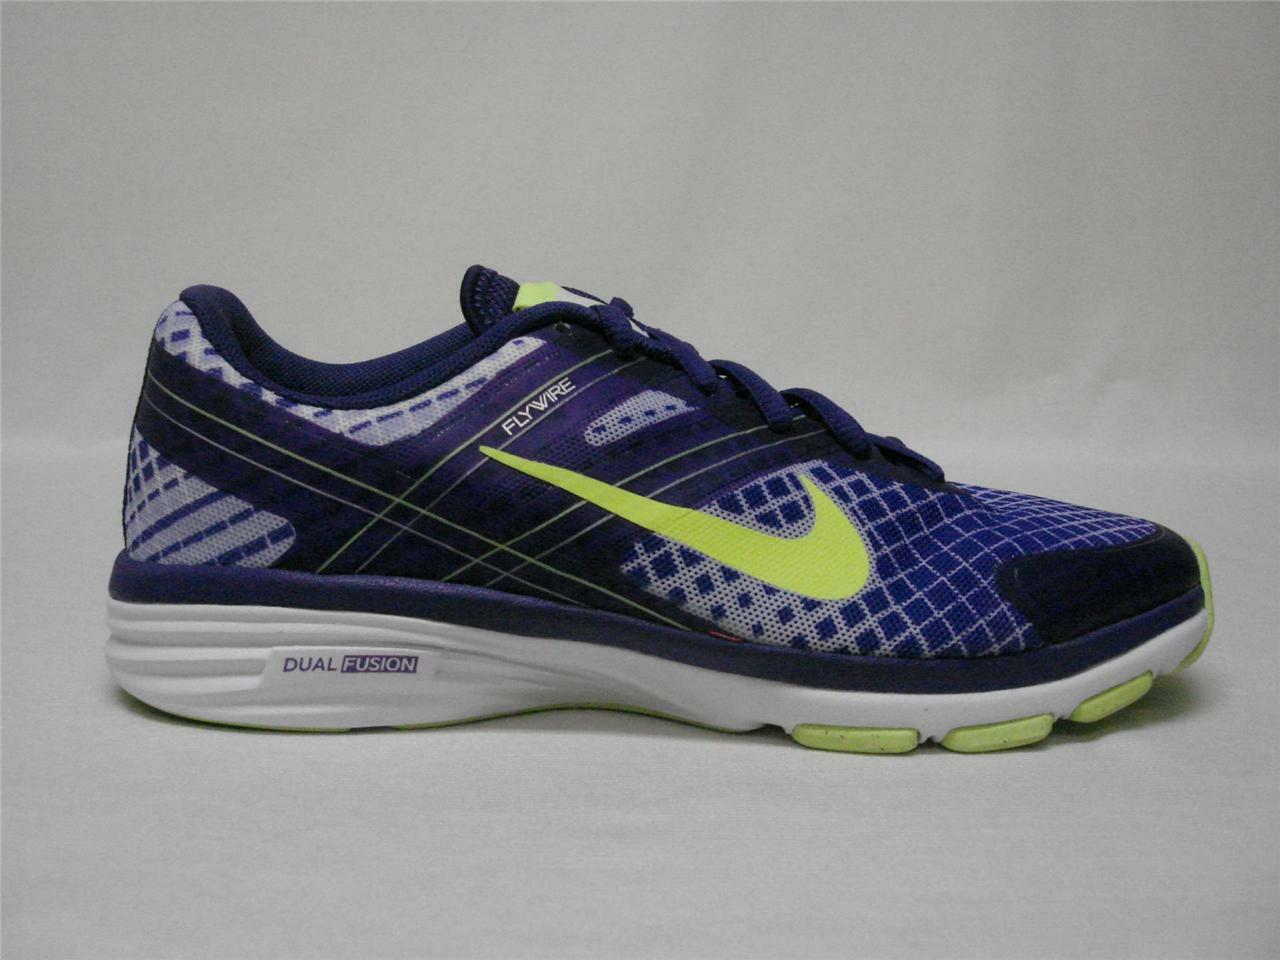 NEW NIKE DUAL FUSION TR 2 PRINT WOMEN'S SHOES 6 PURPLEAWESOME SHOES